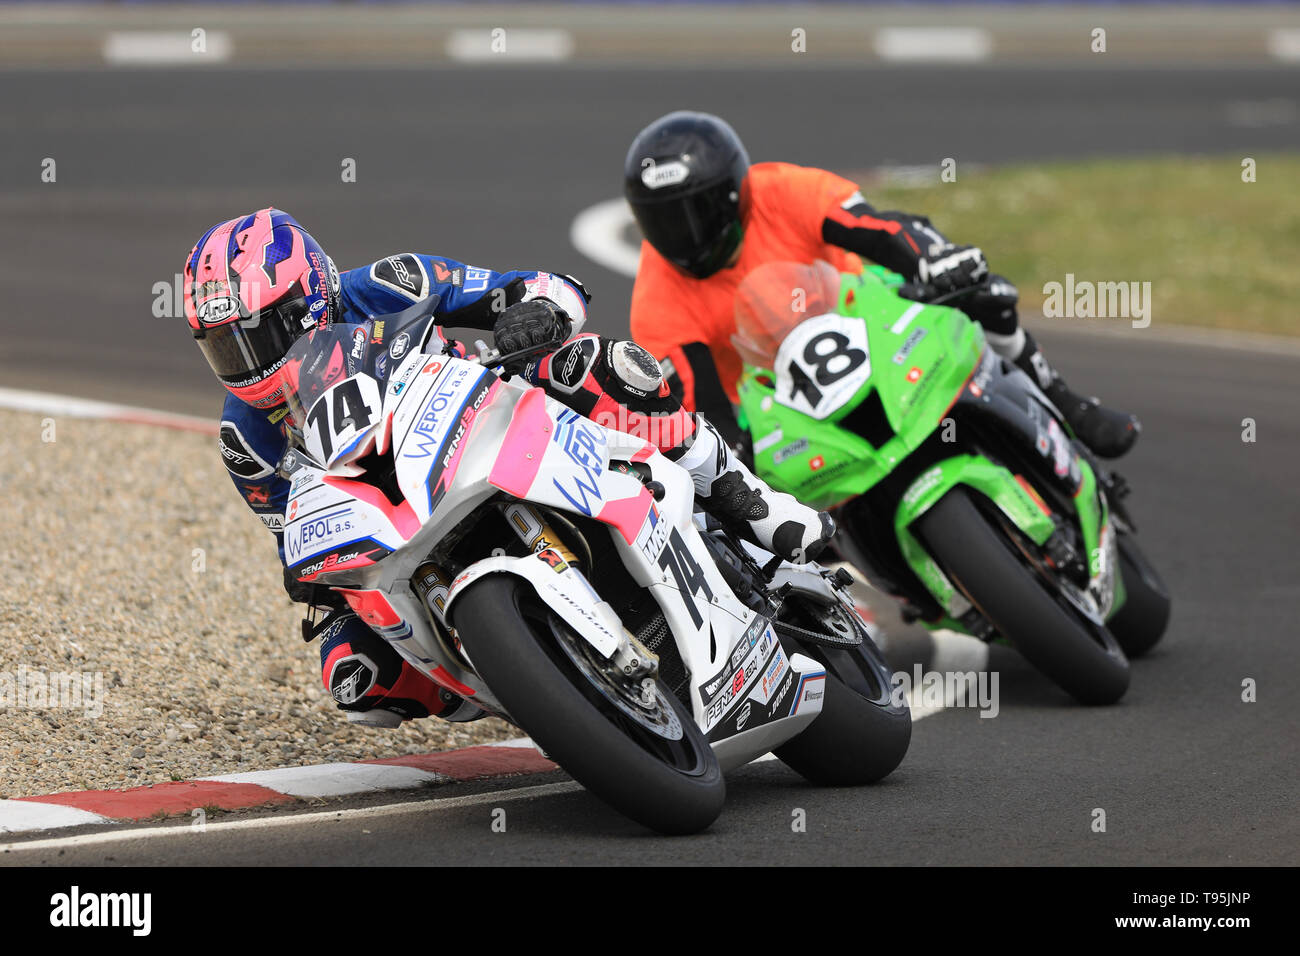 Portrush, Northern Ireland. 16th May, 2019. International North West 200 Motorcycle road racing, Thursday practice and evening racing; Davey Todd (Penz13.com BMW) leads Switzerland's Lukas Maurer on the L78 Racing Team by Heidger Motorsport Kawasaki during the SuperBike qualifying session Credit: Action Plus Sports/Alamy Live News - Stock Image